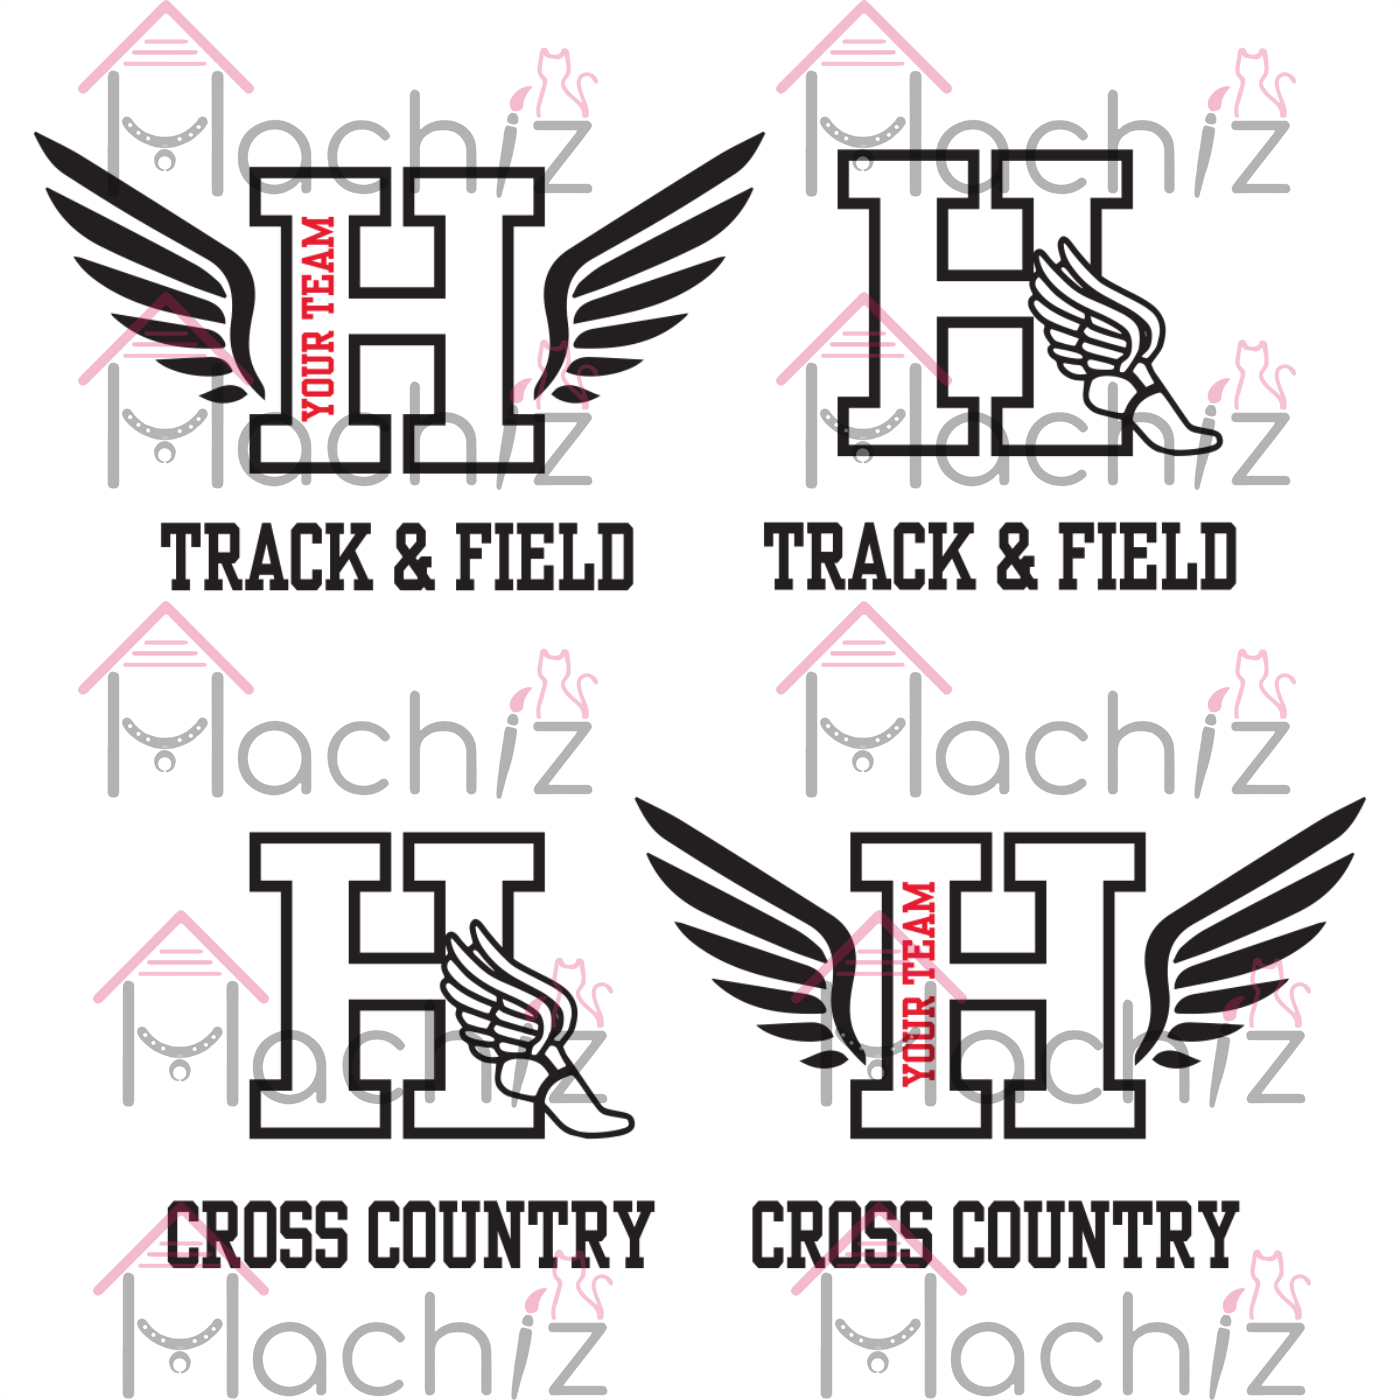 Track and Field SVG, Cross Country svg, Letter H svg, Track Wings svg, Track and Field shirt, Track and Field gift, Cross Country H svg, Cross Country shirt, Cross Country gift,